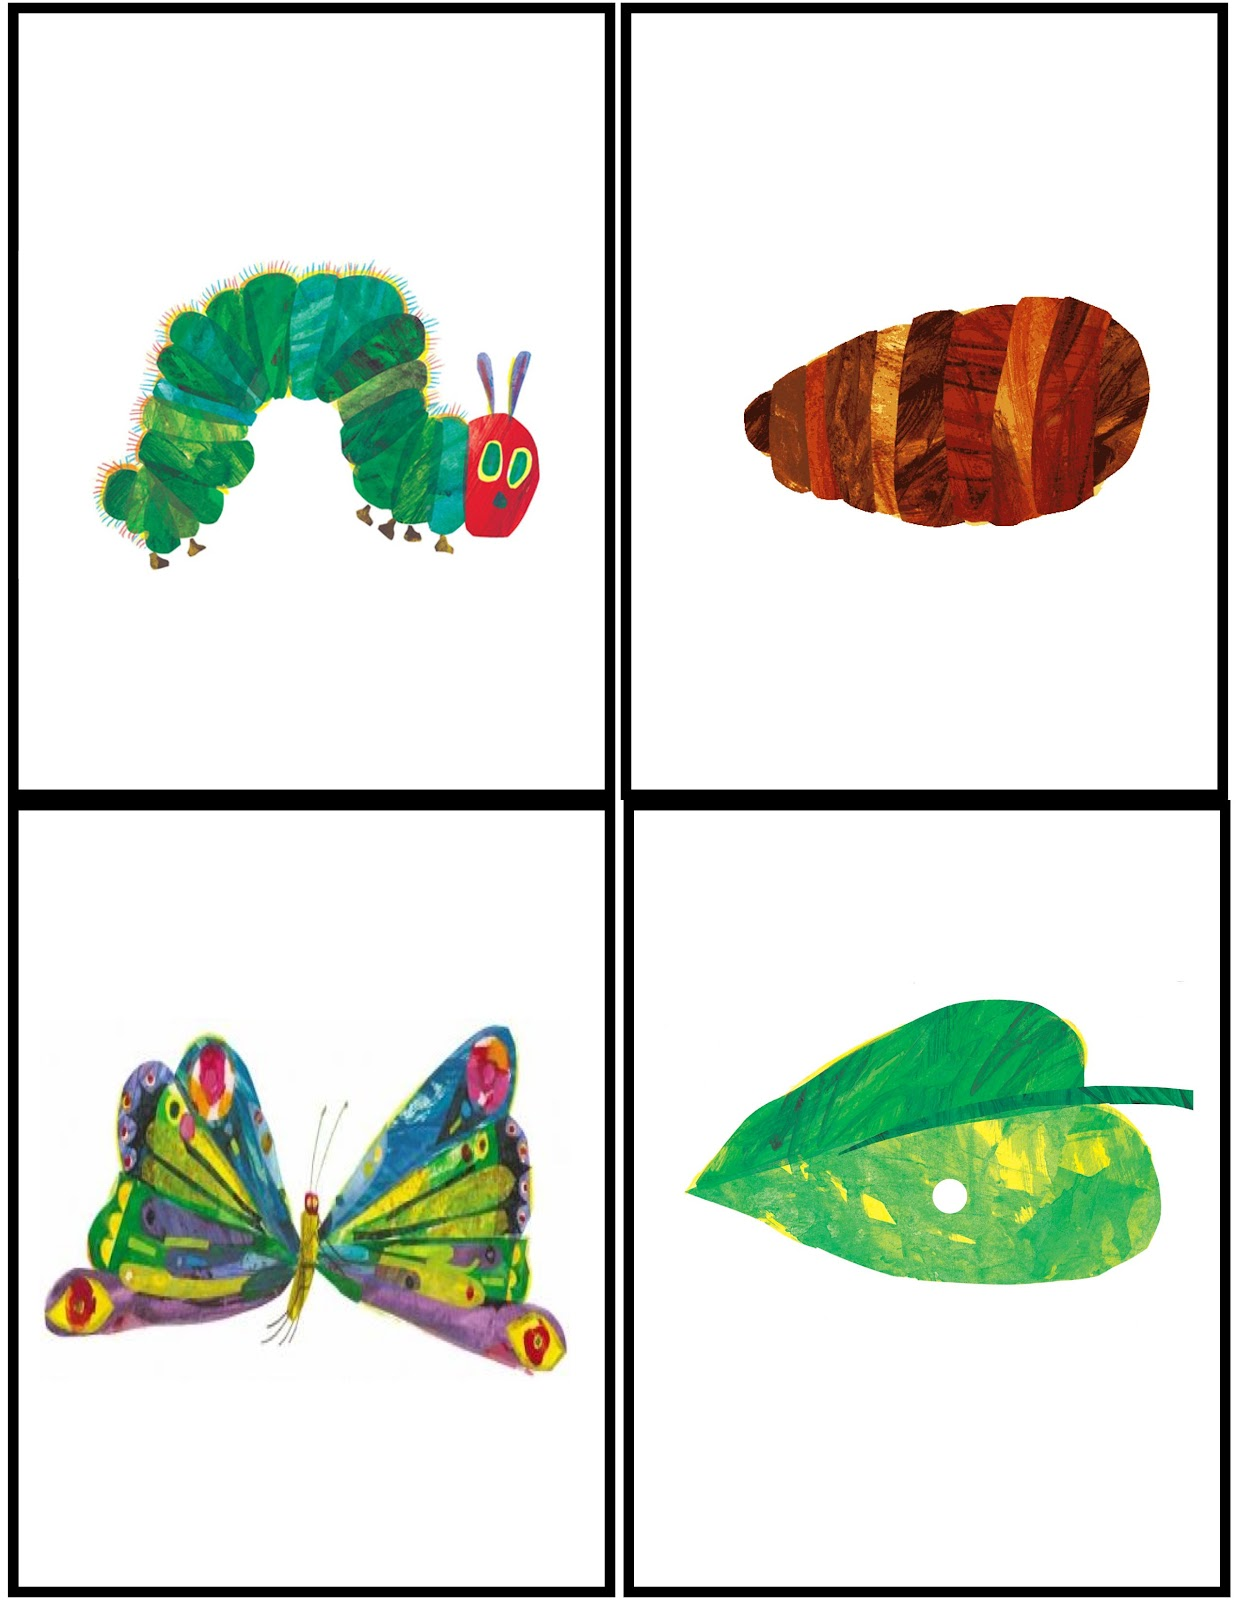 How To Fill Out A Venn Diagram Apexi Avcr Boost Controller Wiring Teacher Talk: The Very Hungry Caterpillar